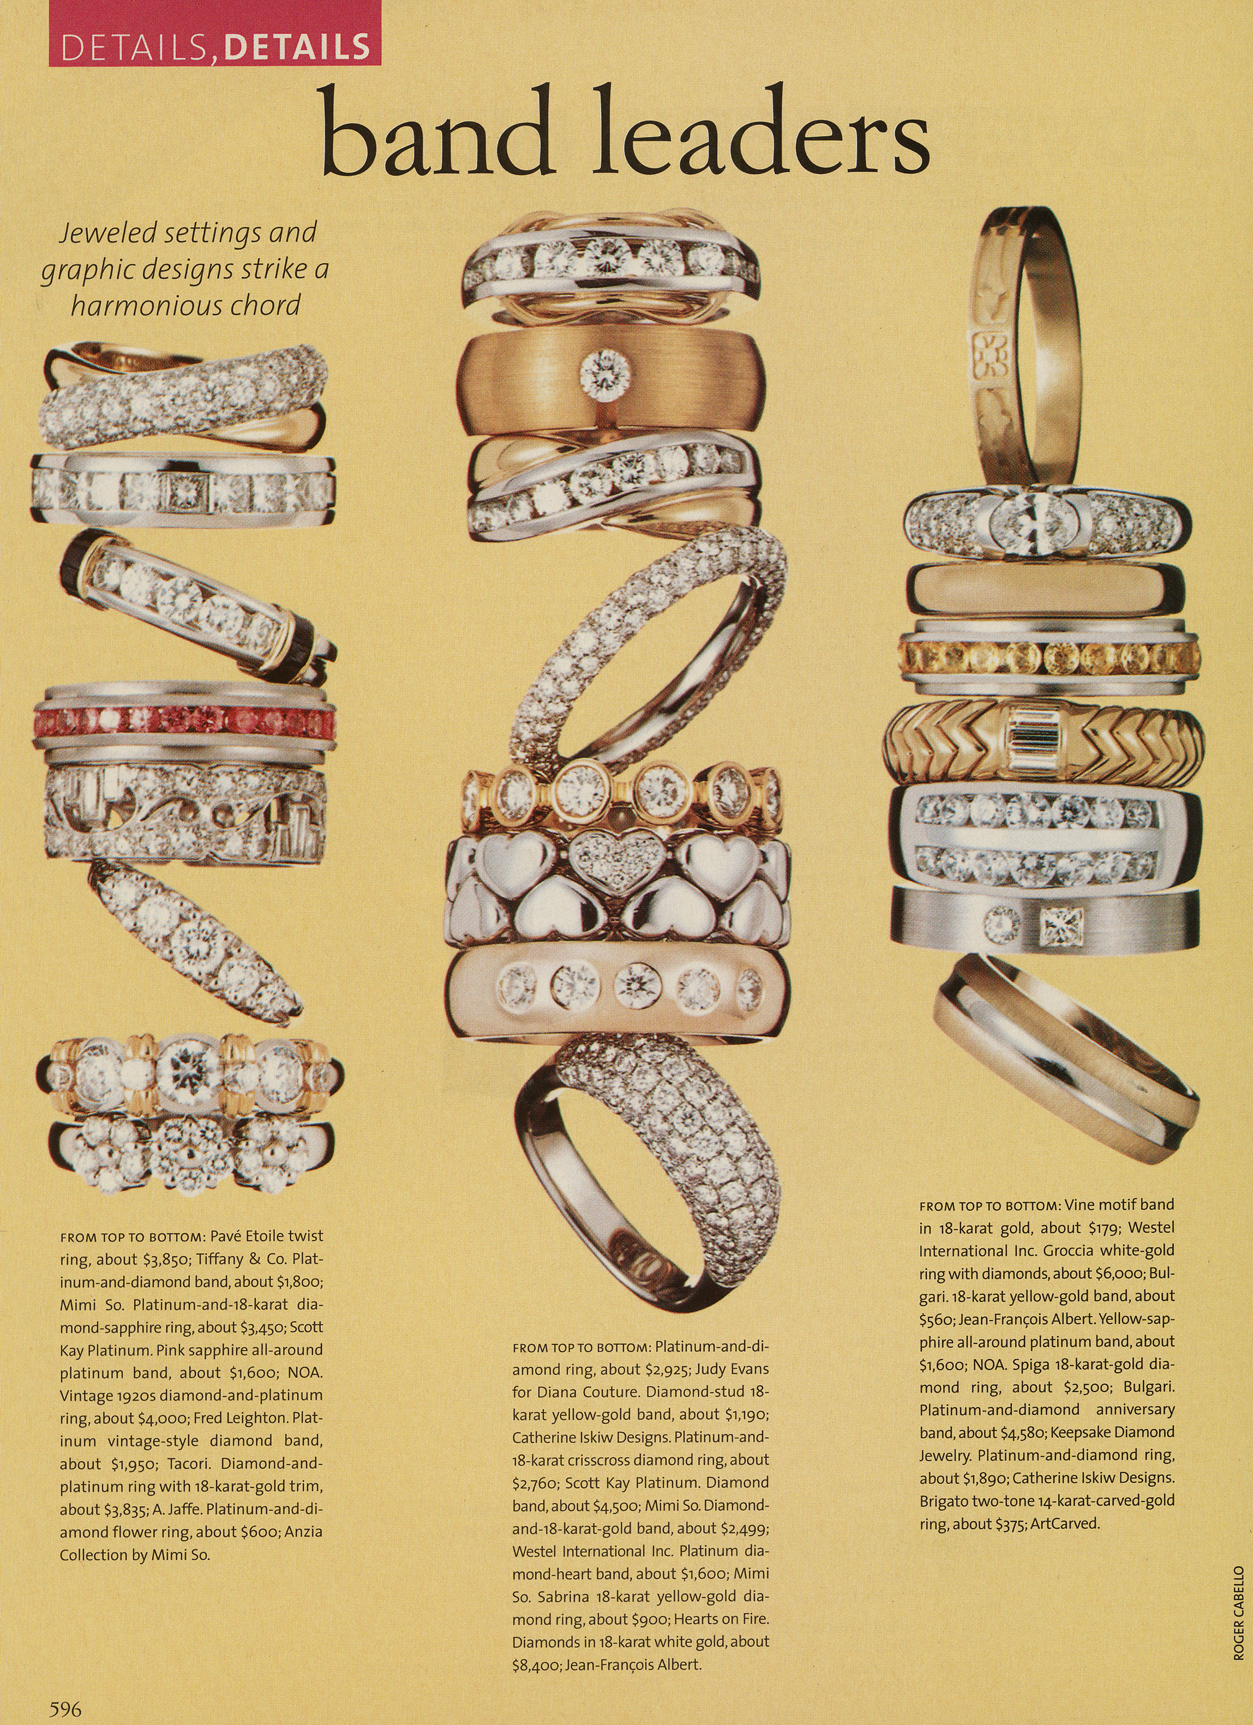 1999-Brides-10-11-Oct-Nov-Details.jpg